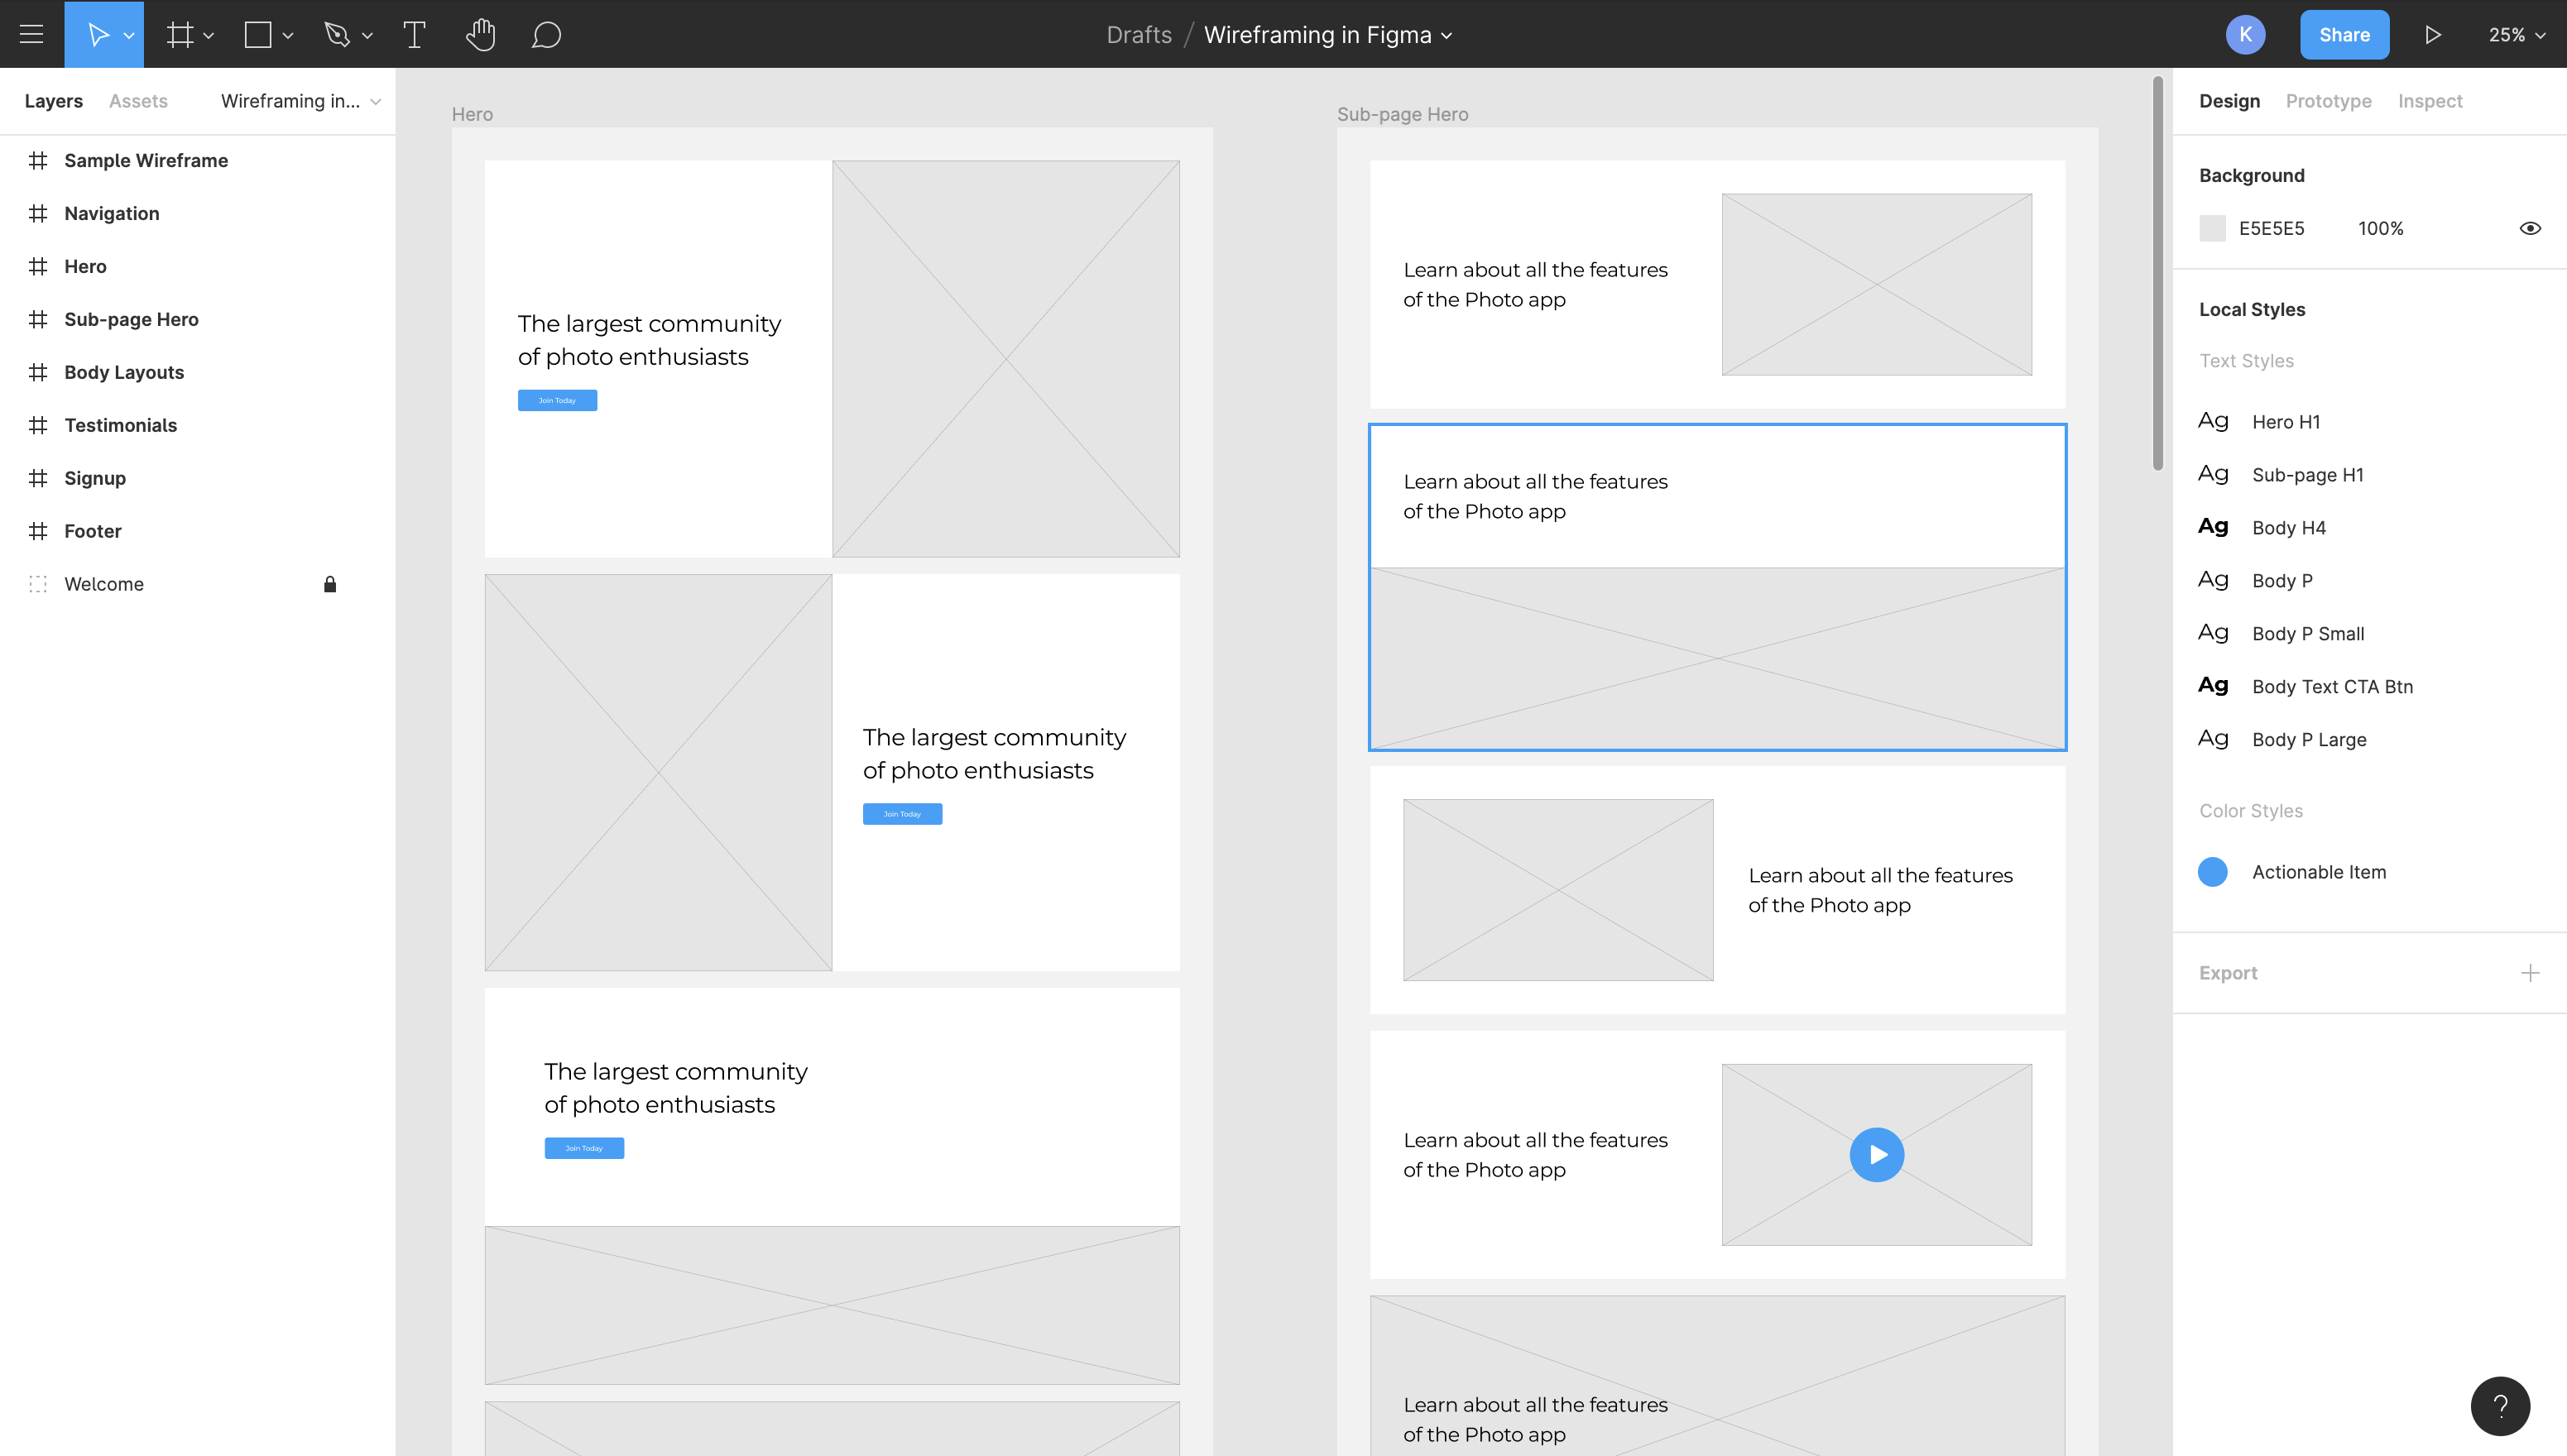 wireframing screenshot in Figma